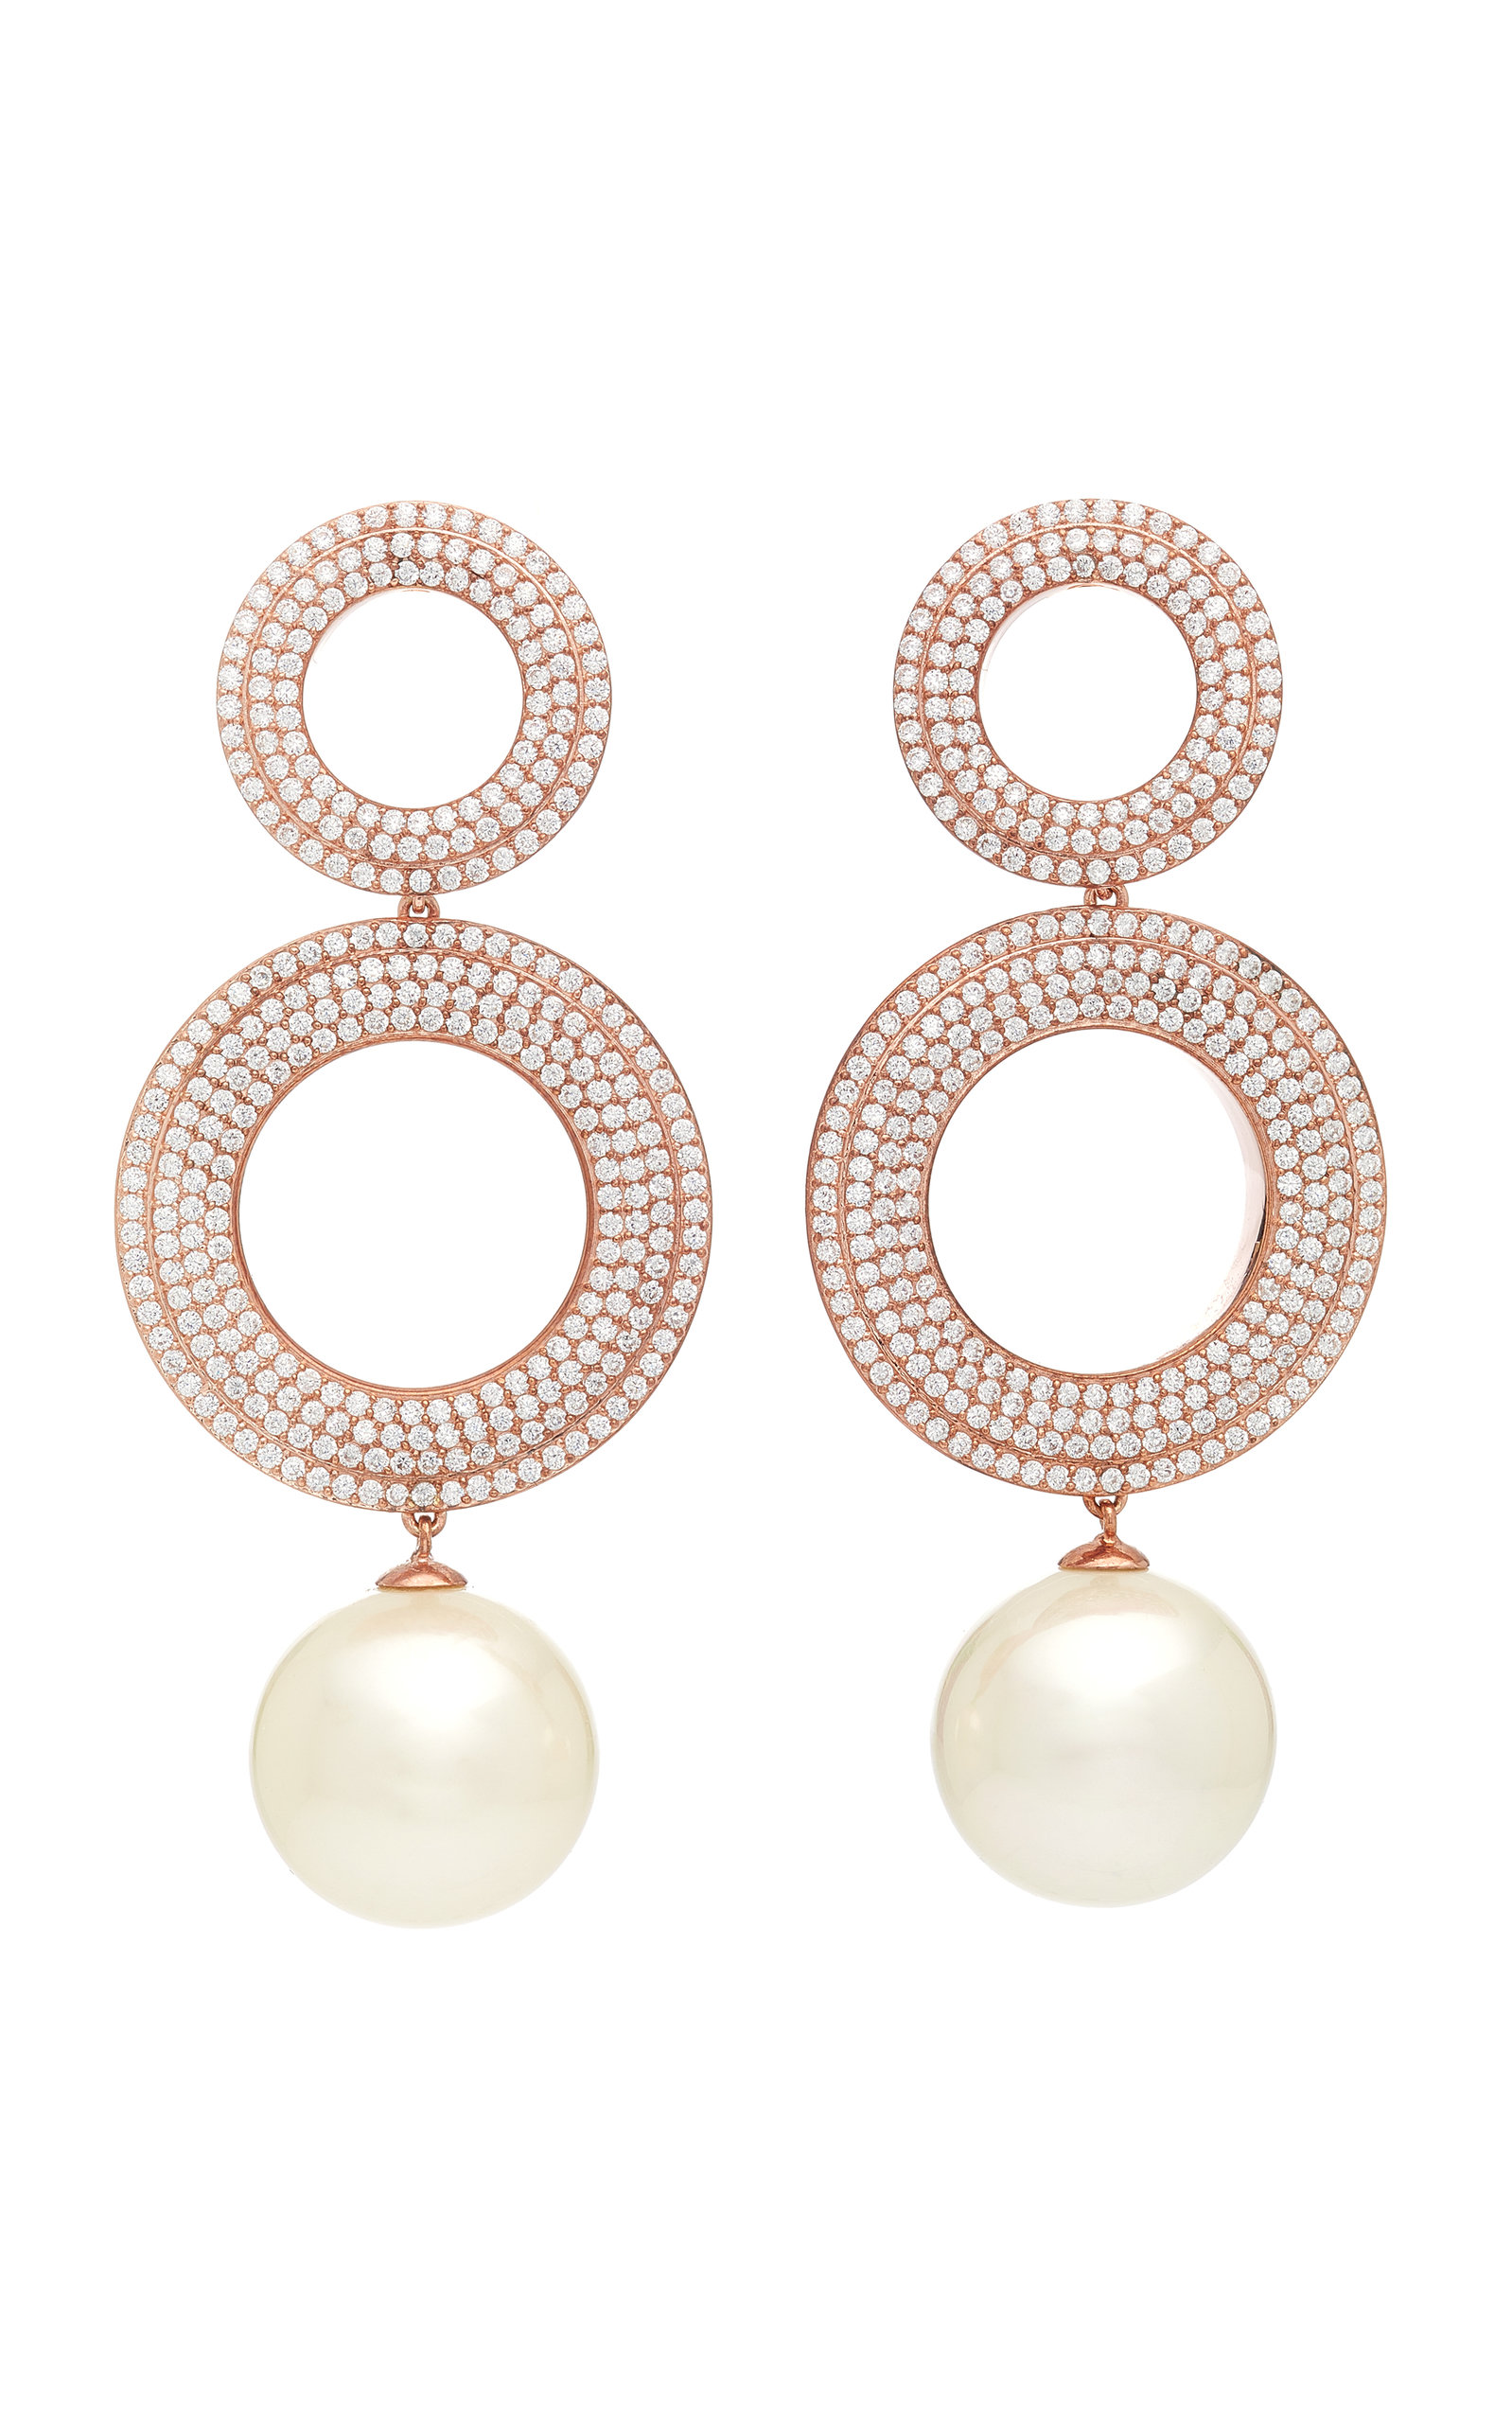 JOANNA LAURA CONSTANTINE GROMMETS GOLD-PLATED BRASS CUBIC ZIRCONIA AND PEARL EARRINGS